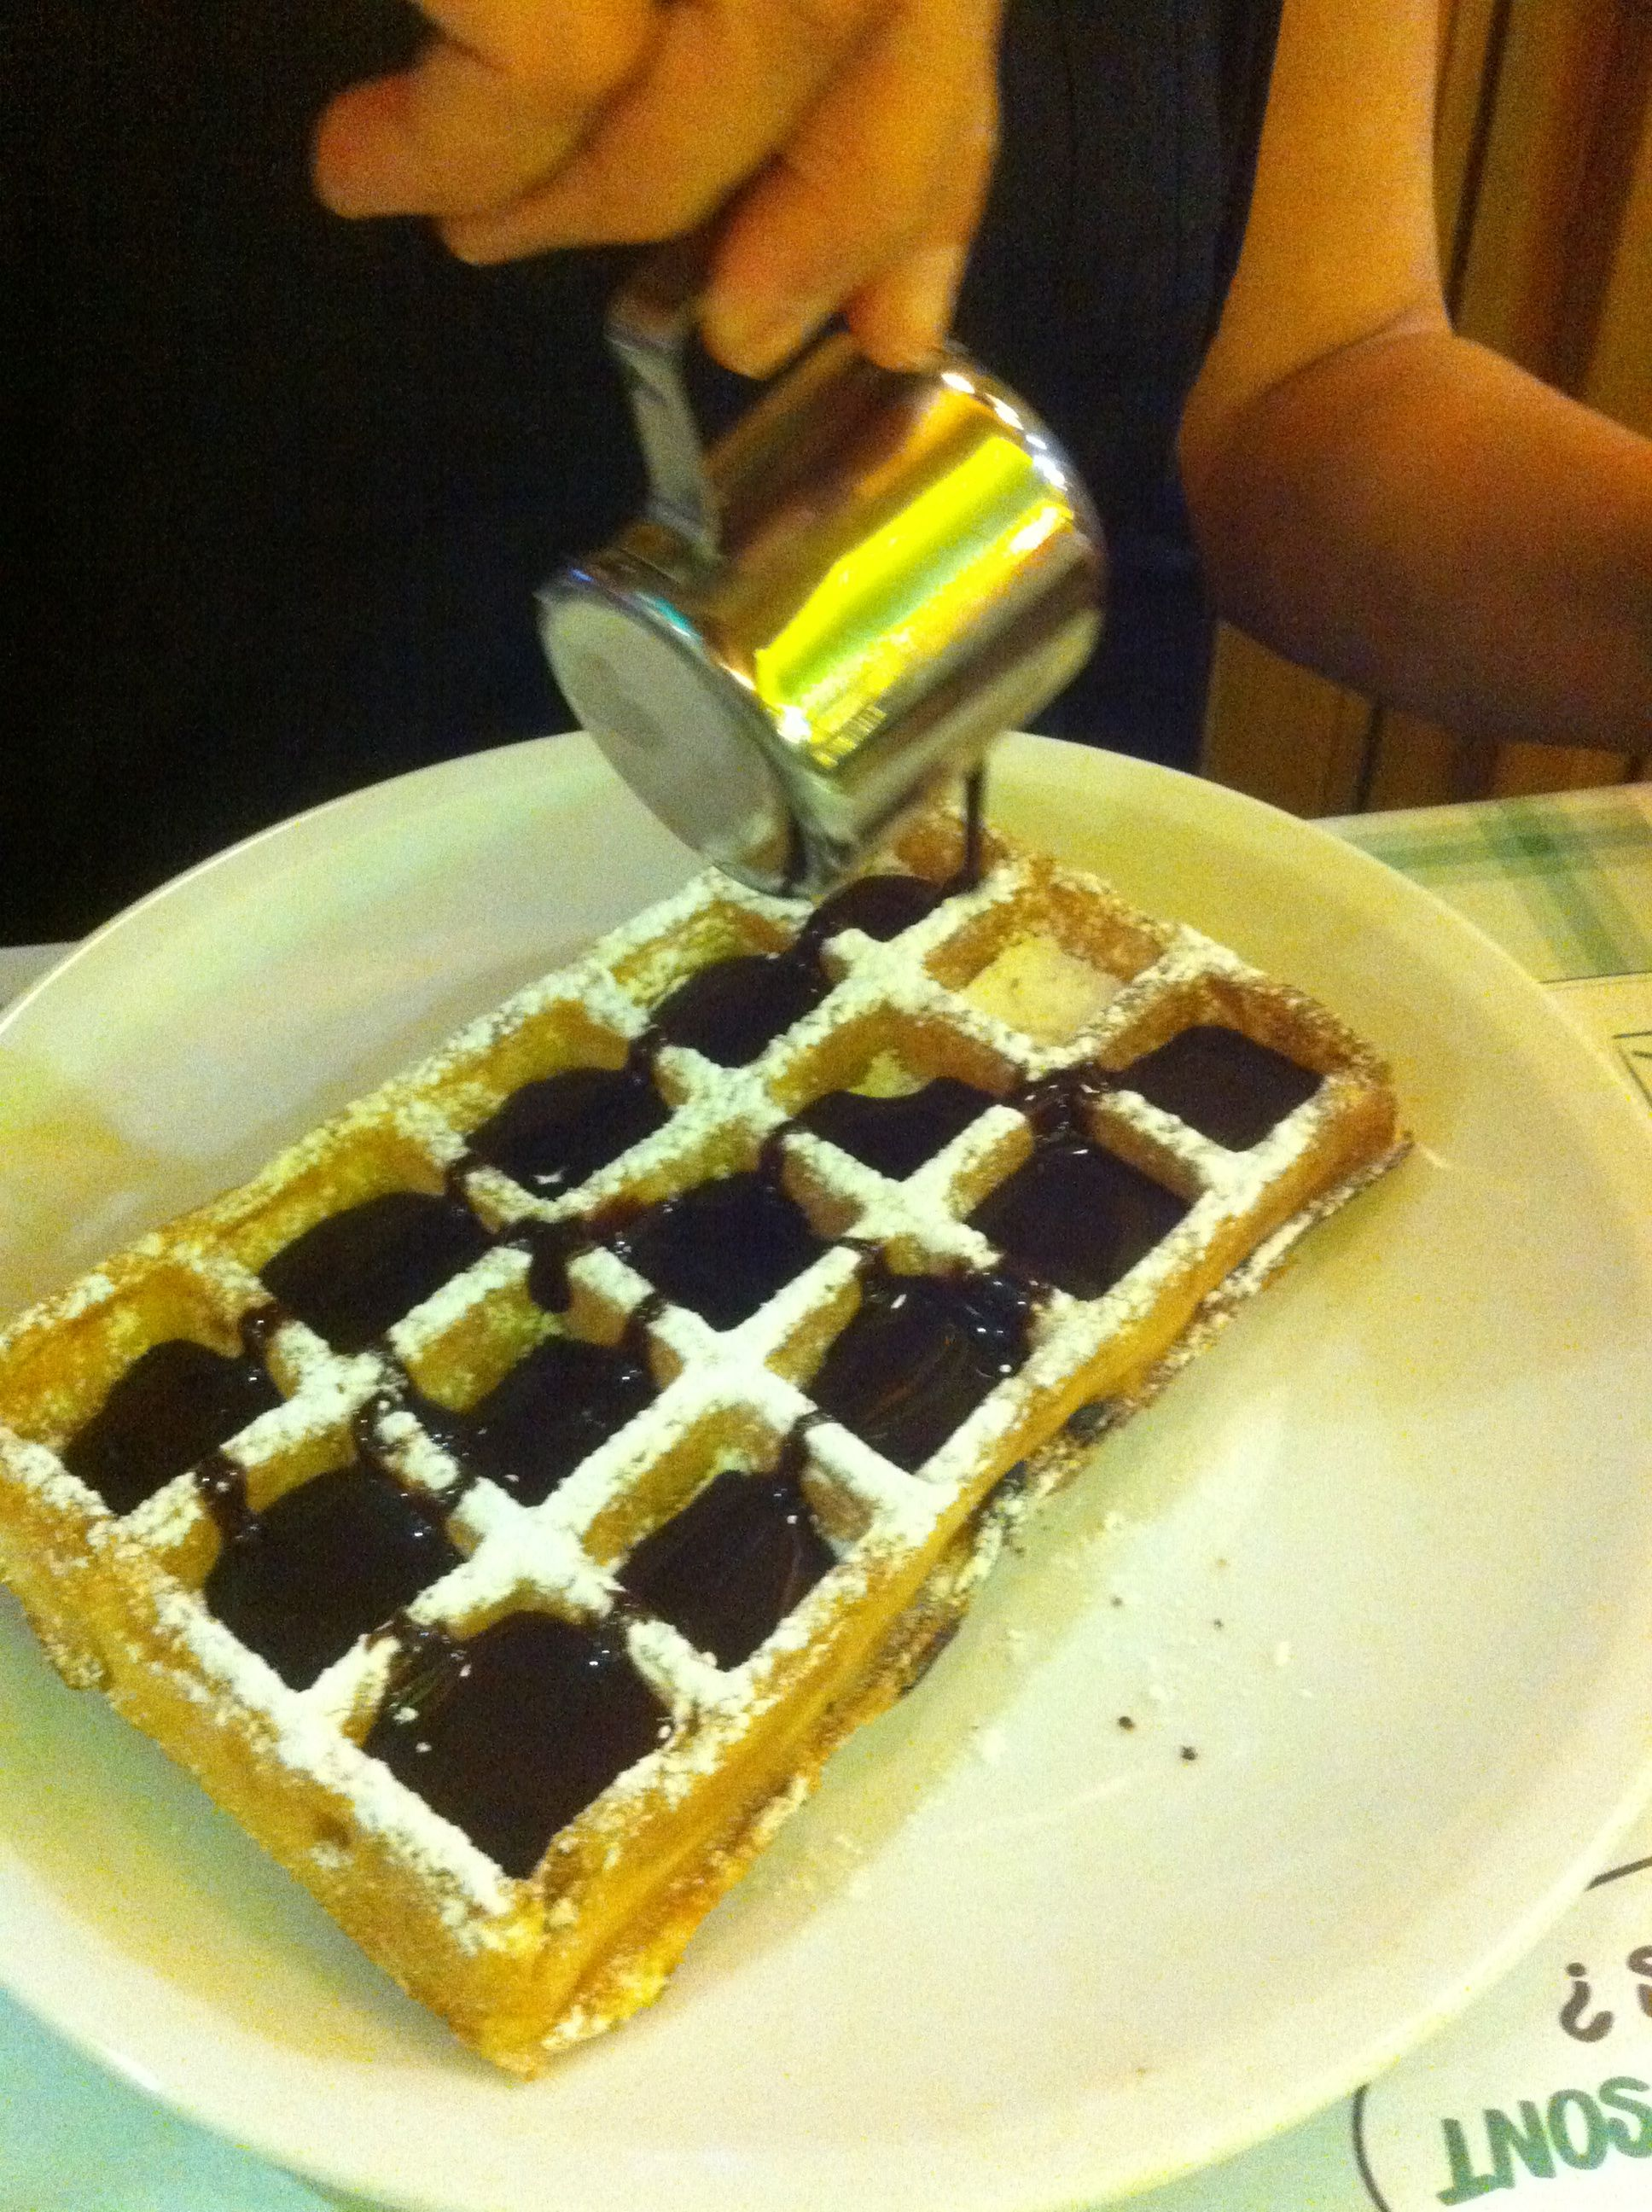 Wafle cubierto con chocolate bitter en Paris